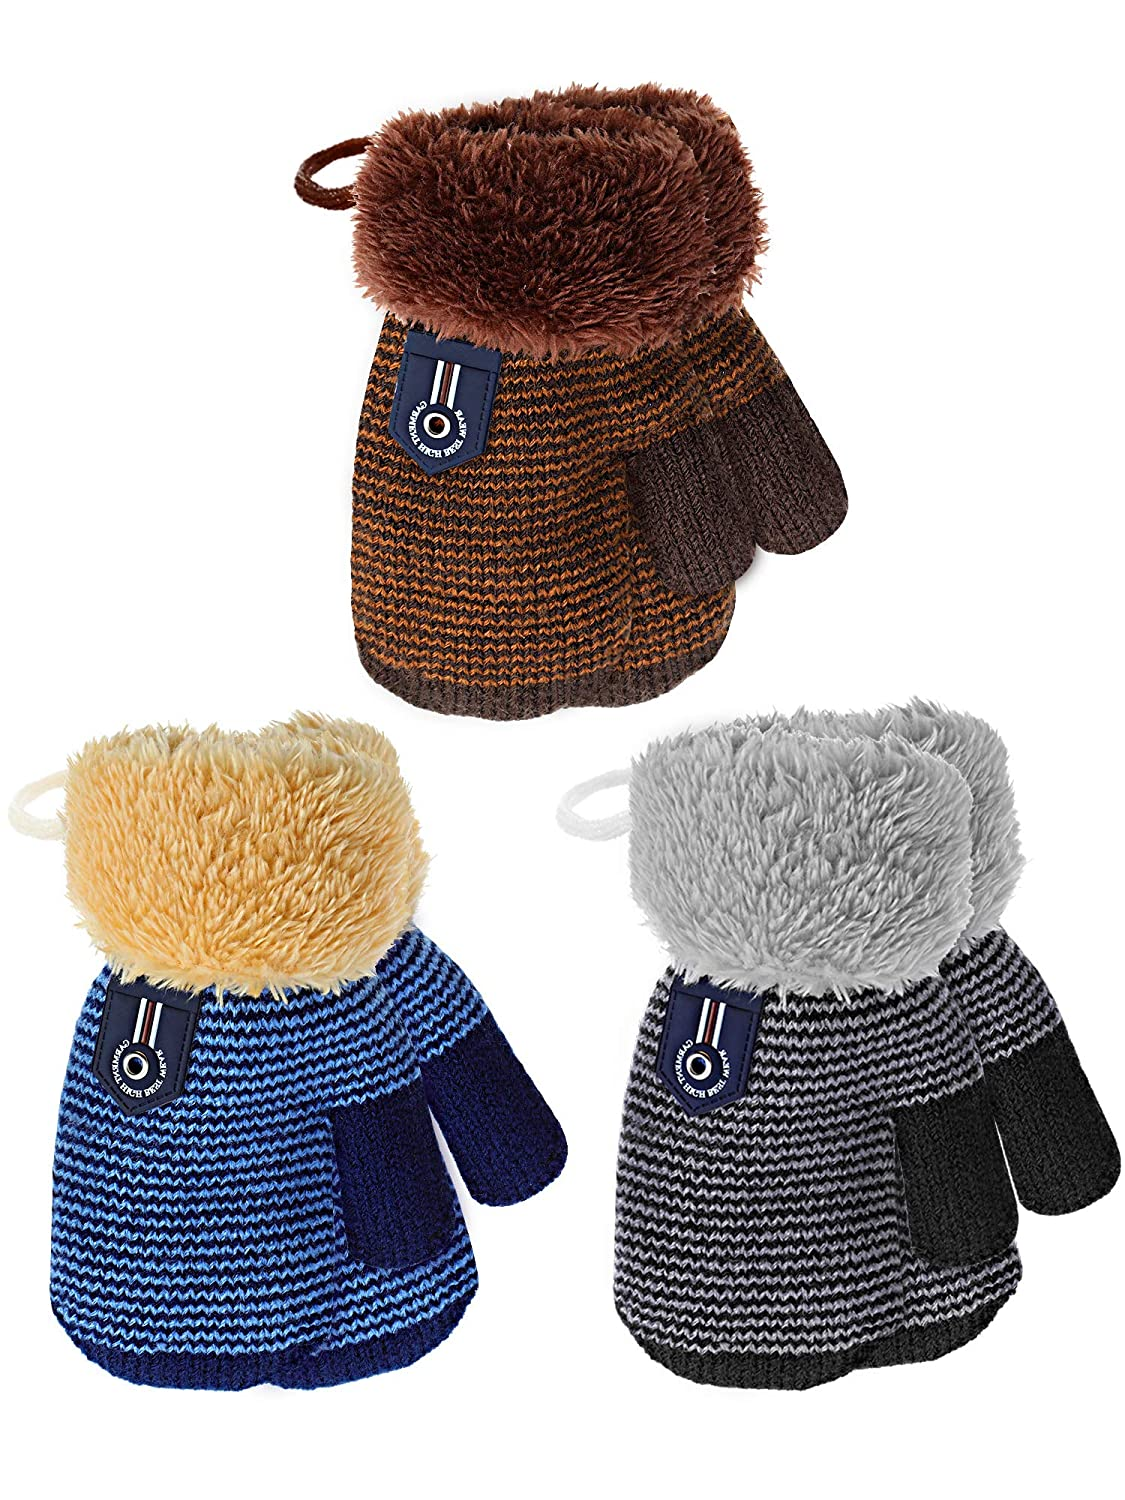 Zhanmai 3 Pairs Toddler Winter Mittens Gloves Baby Boys Girls Warm Gloves Infant Thicken Knit Mittens Kids Gloves Royal Blue Brown)